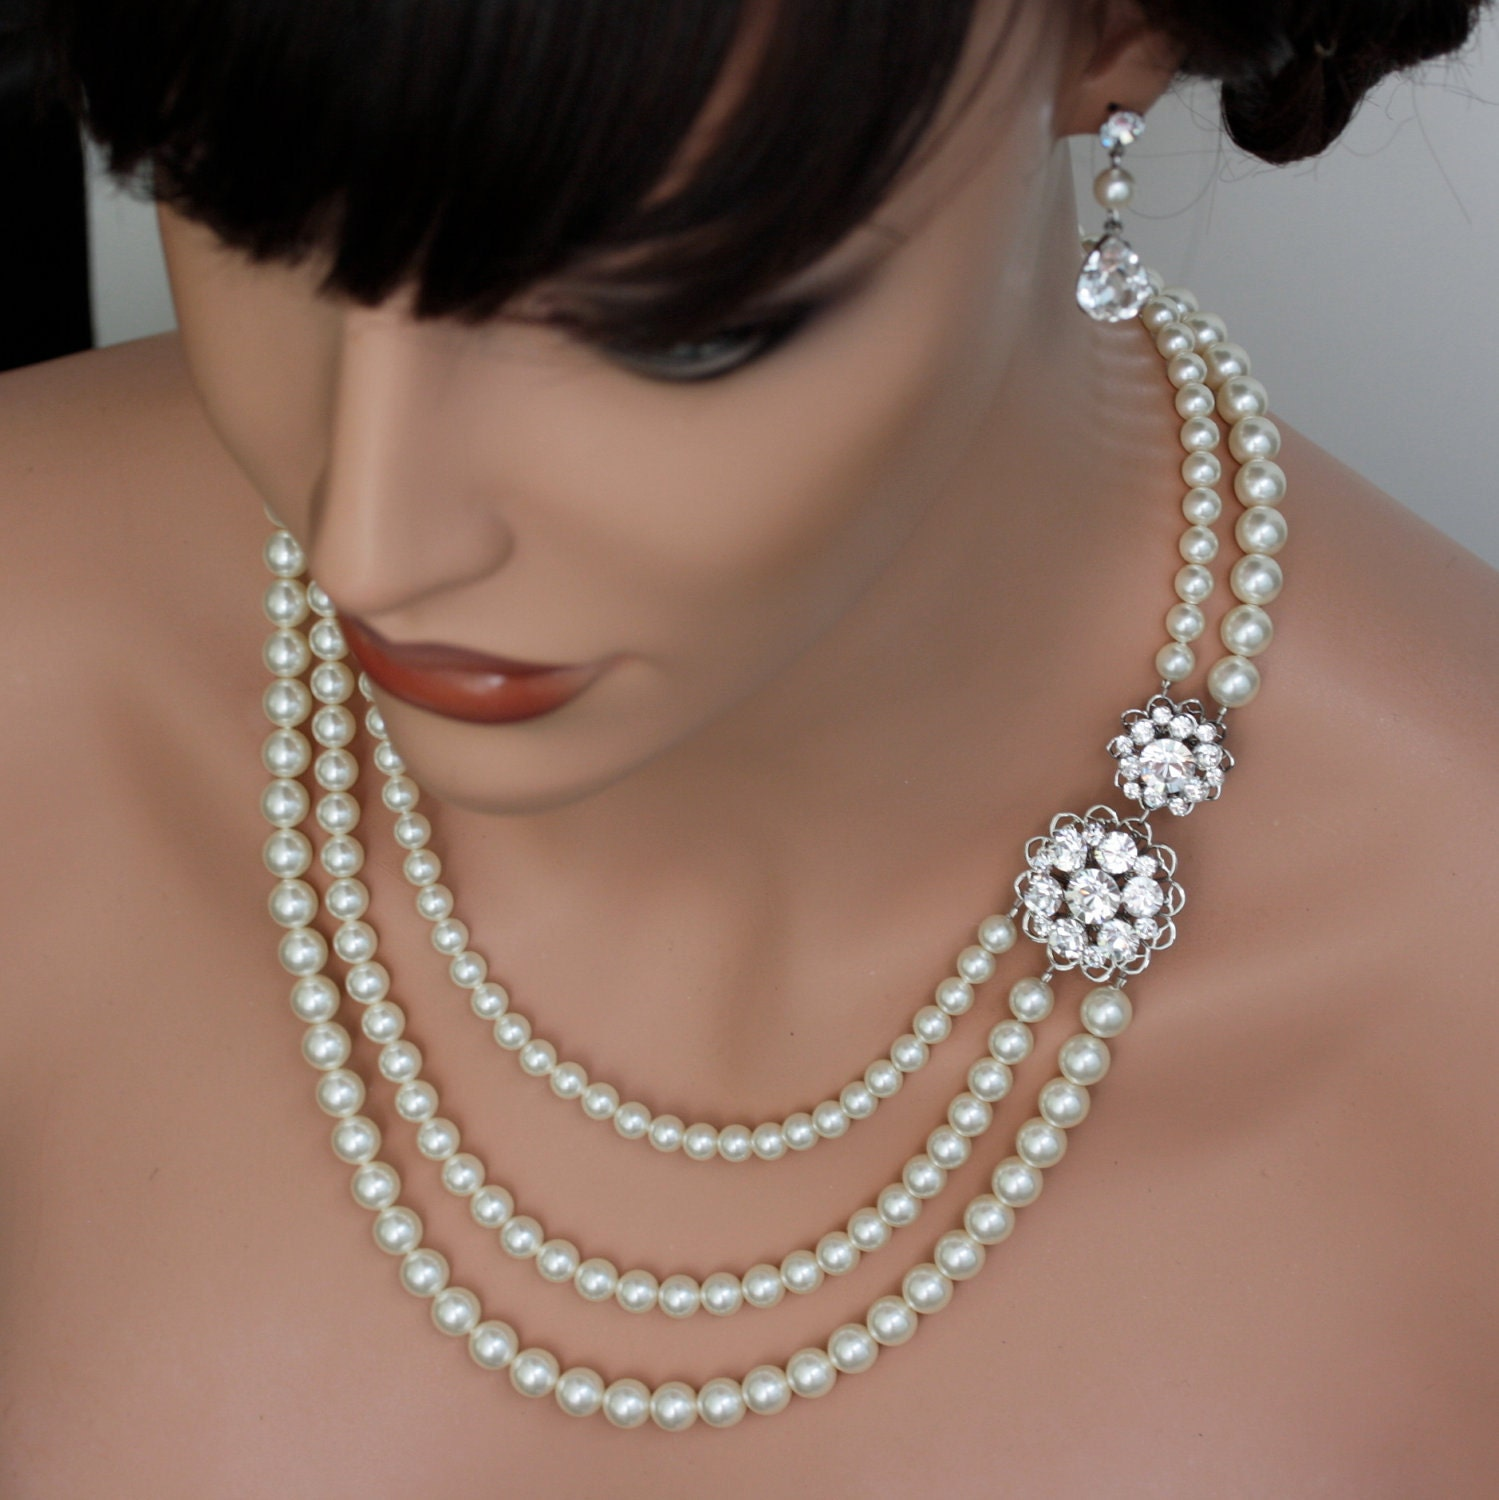 Necklace With A Pearl: Bridal Pearl Necklace Triple Strand Bridal Necklace Wedding